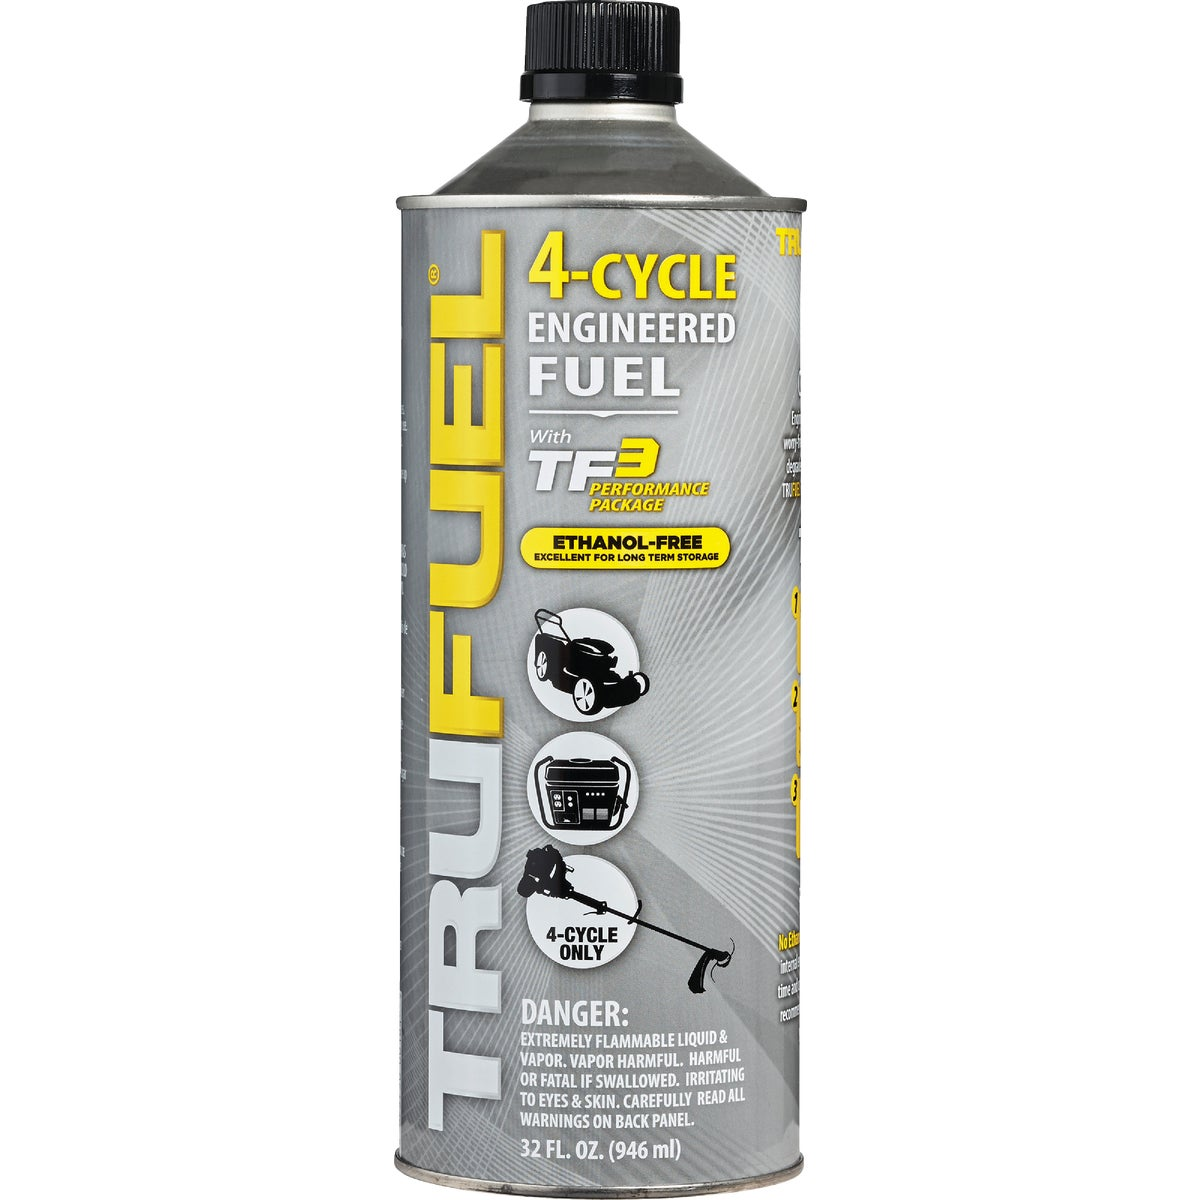 32OZ 4-CYCLE FUEL - 6527238 by Arnold Corporation